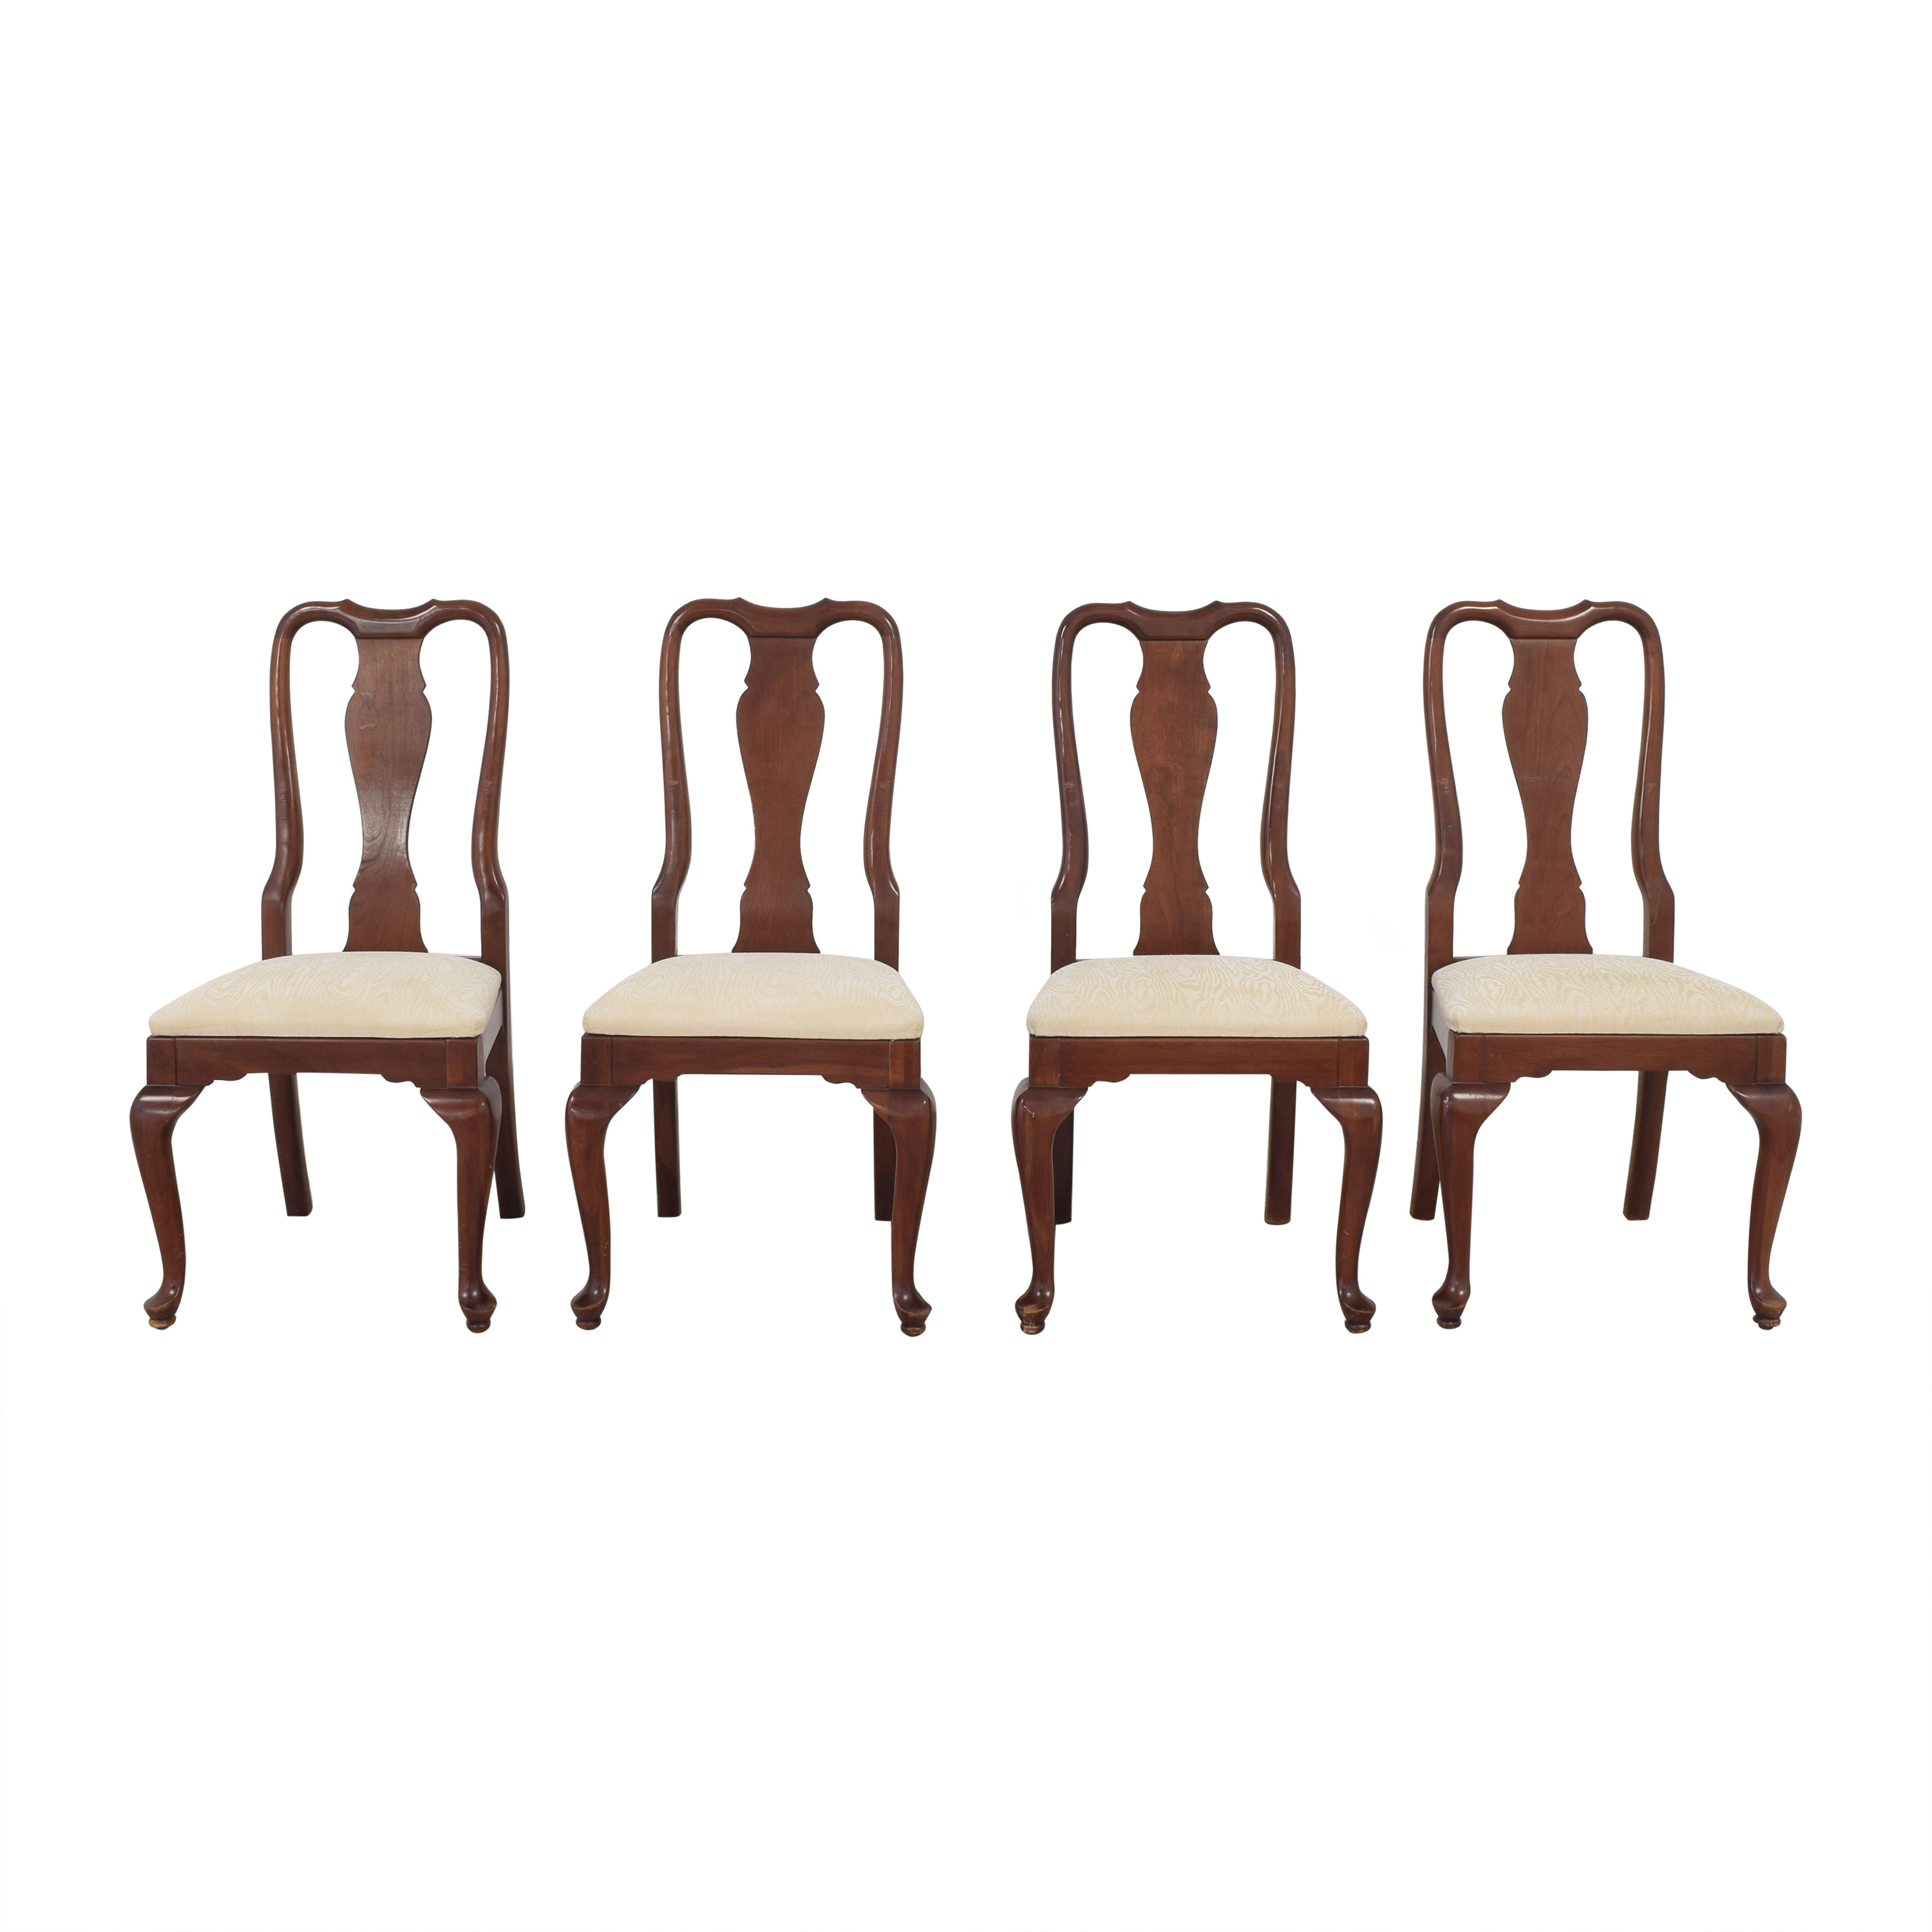 Knob Creek Penn Manor Dining Room Chairs / Dining Chairs